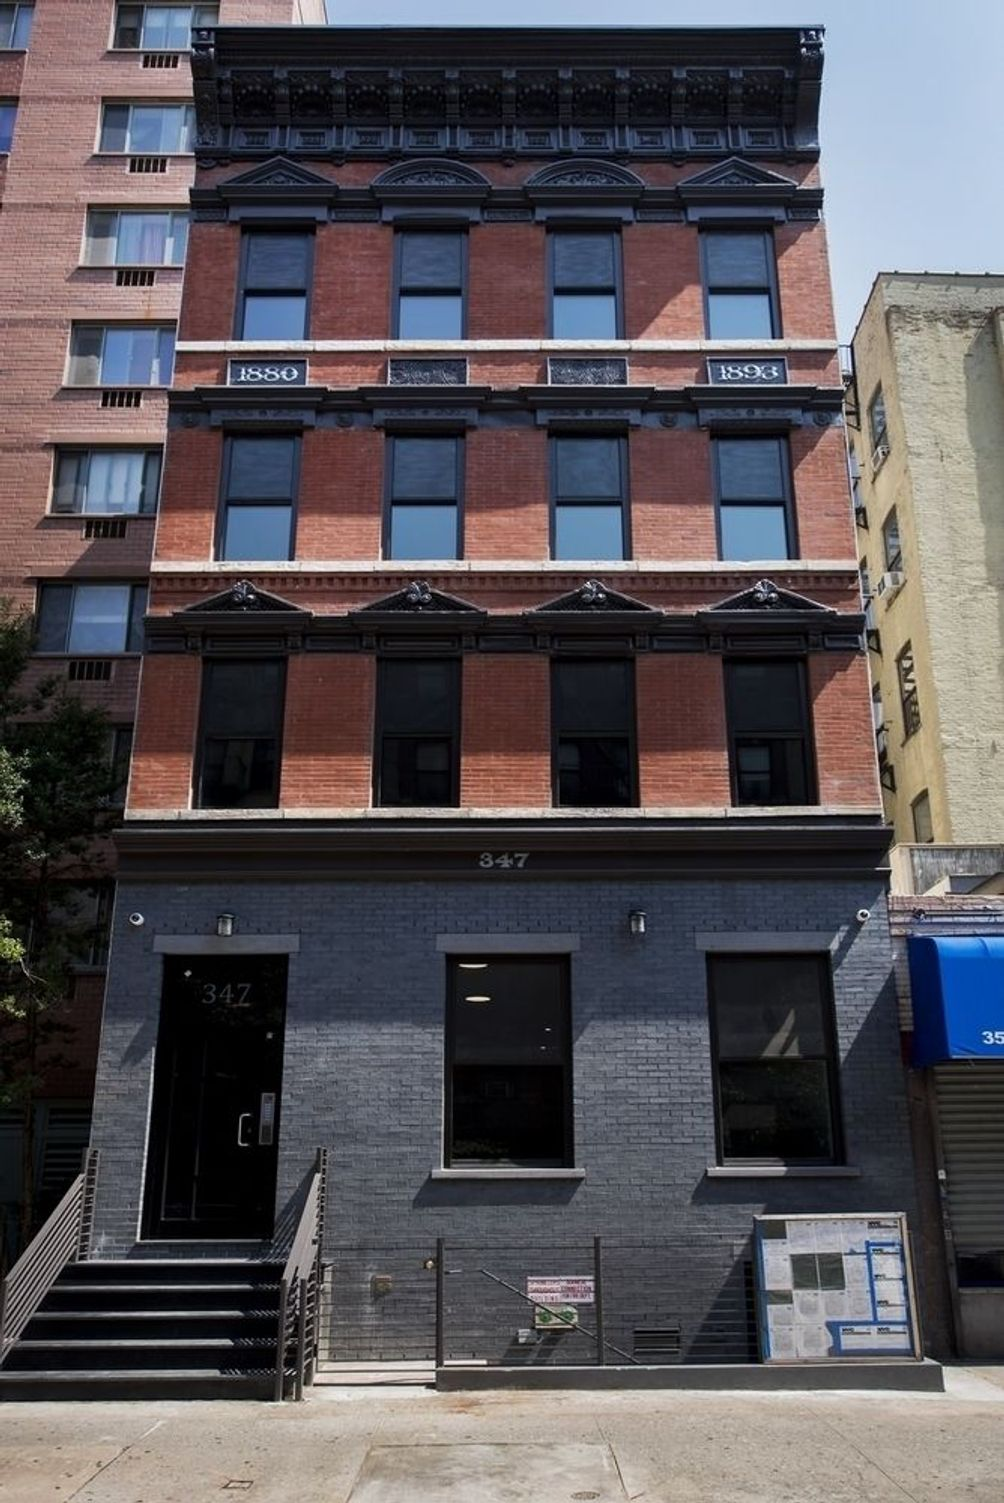 York Ac Units >> Leasing Begins at Newly Renovated East Harlem Walk-Up ...